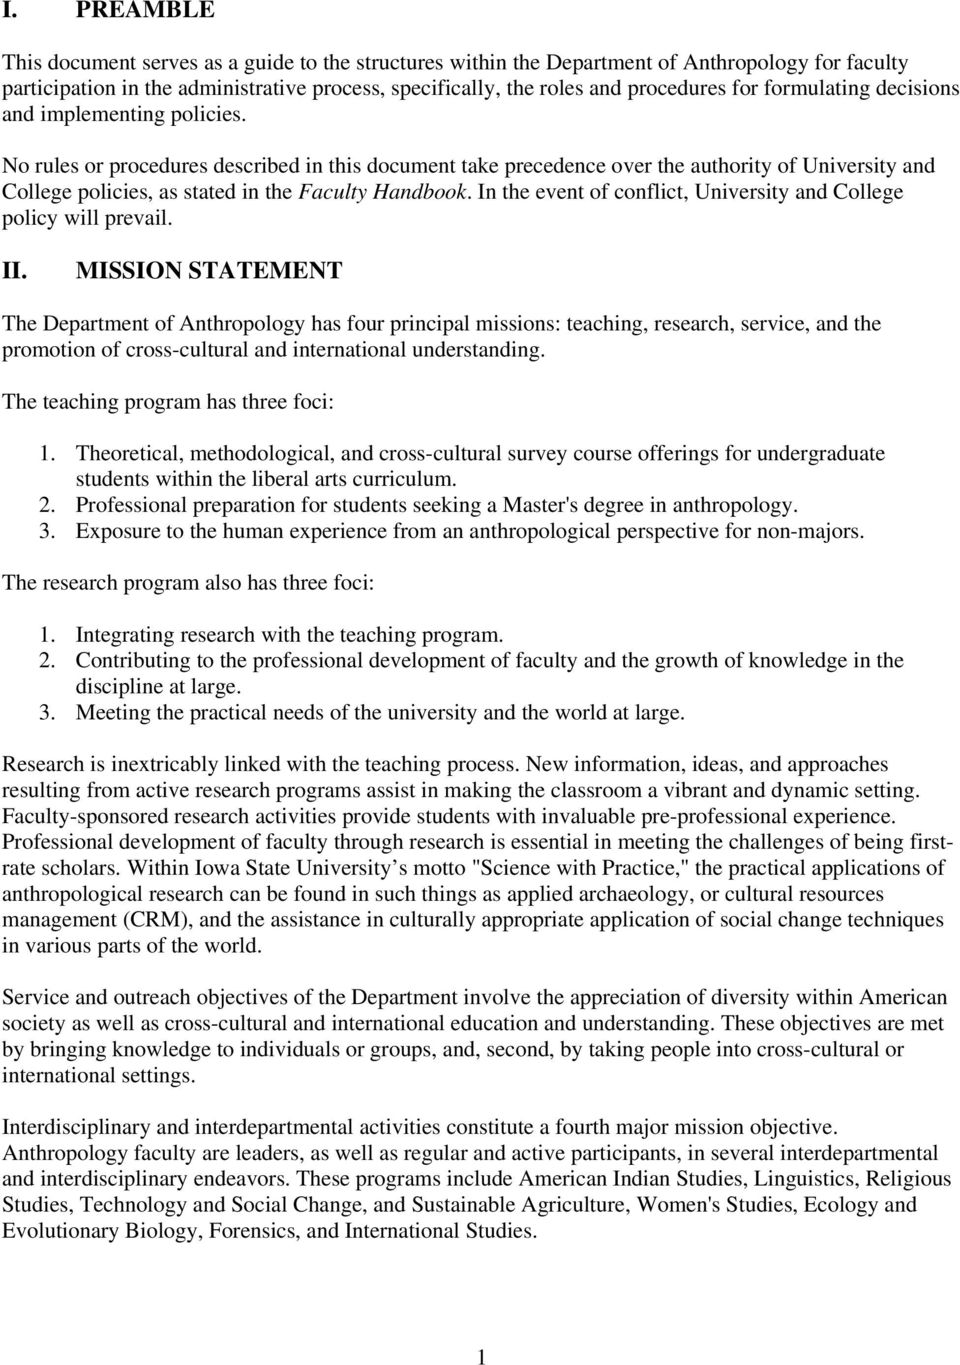 No rules or procedures described in this document take precedence over the authority of University and College policies, as stated in the Faculty Handbook.